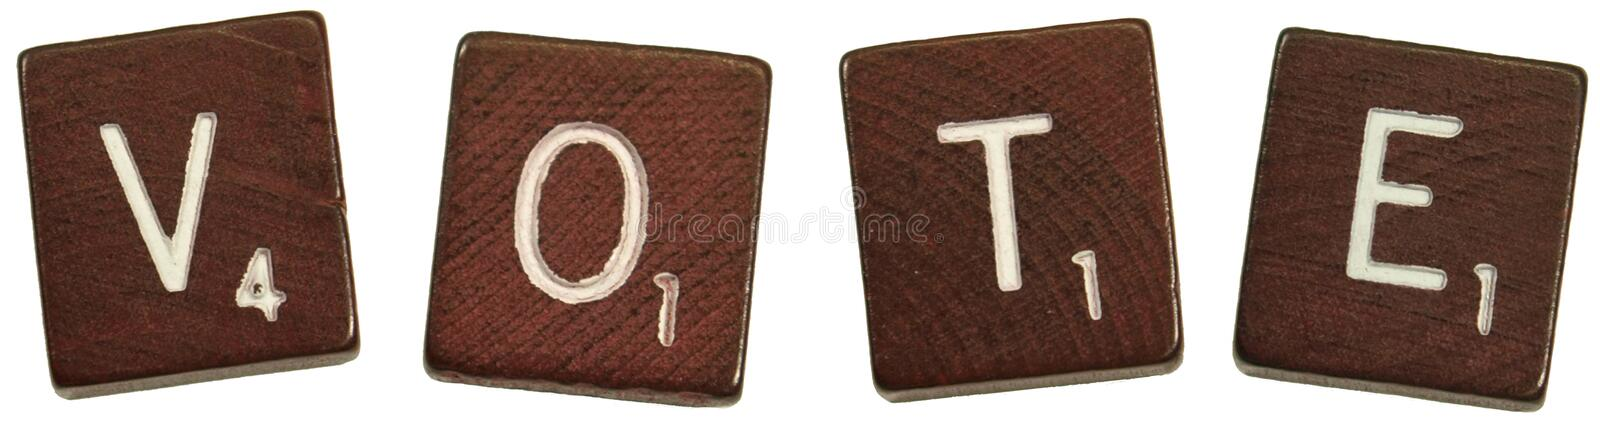 "Vote. Isolated photo of scrabble letters saying, ""Vote royalty free stock images"